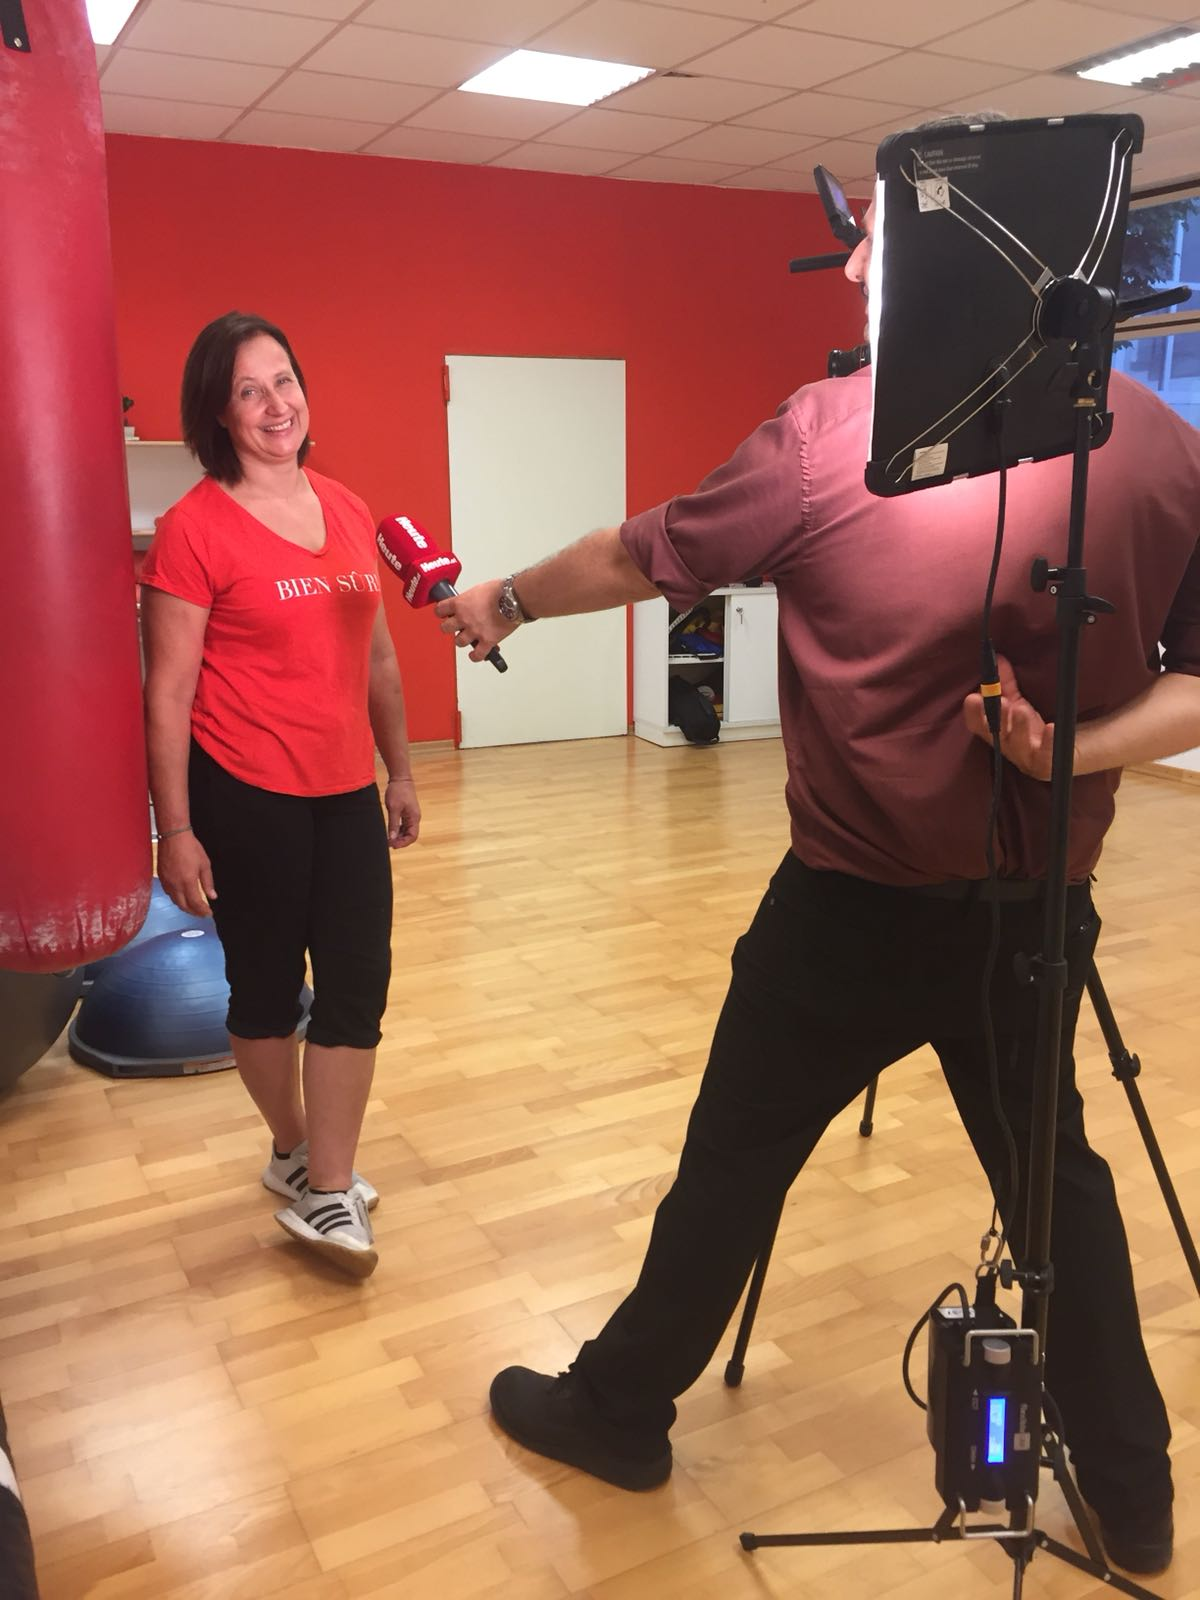 Bettina Pernstich während der Interviewsituation im Boxclub